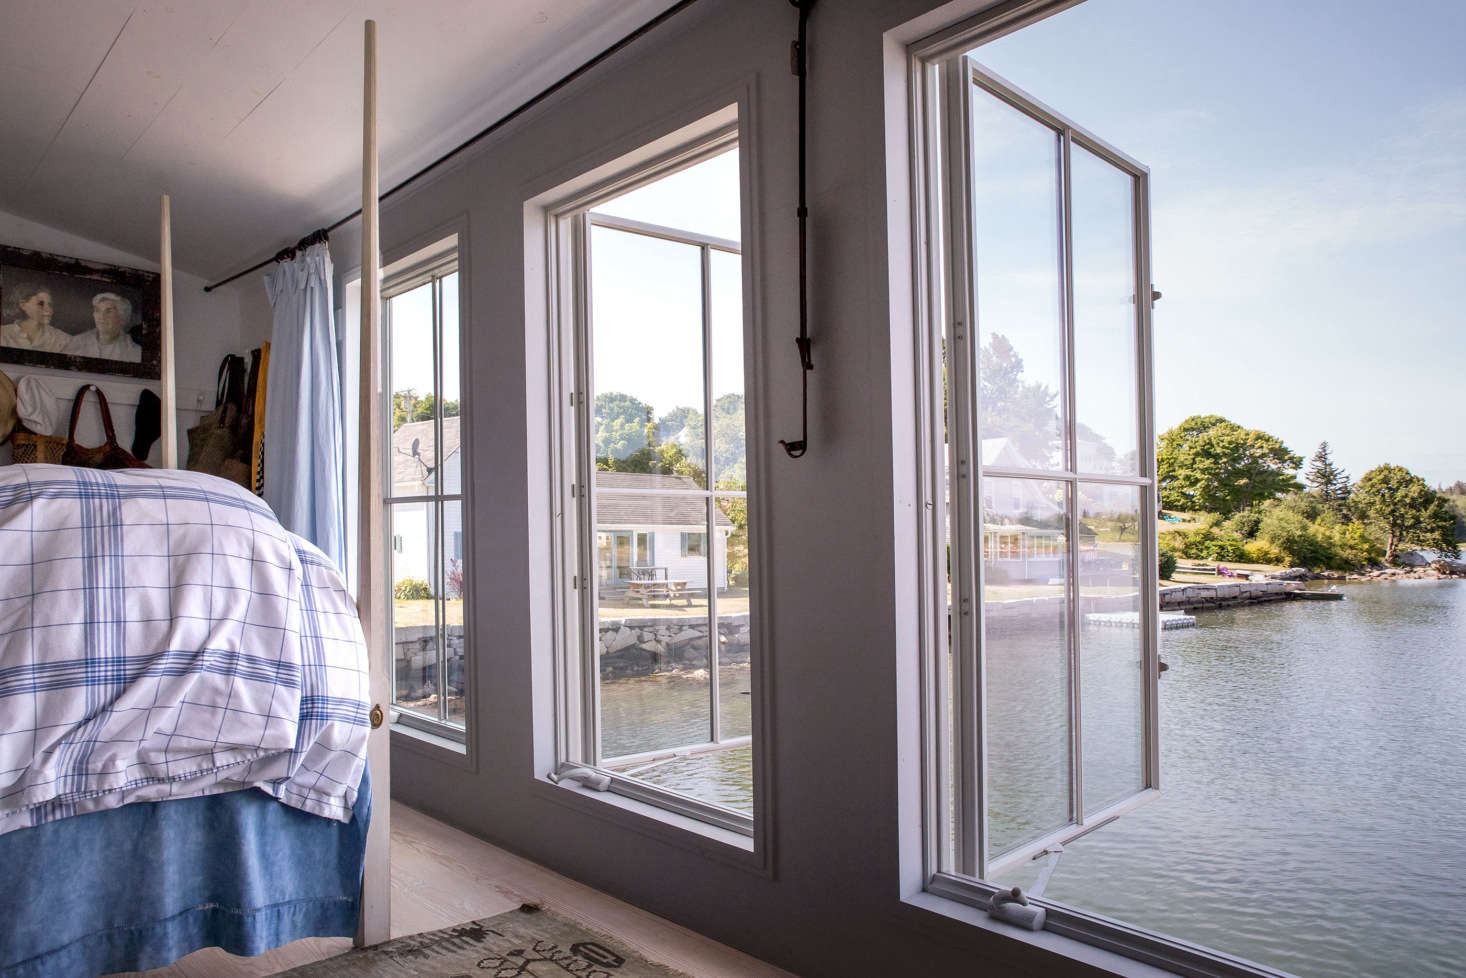 To take in as much of the view as possible, the couple installed floor-to-ceiling Anderson 400 Series casement windows along the entire length of the bedroom wall, as well as on the floor above.